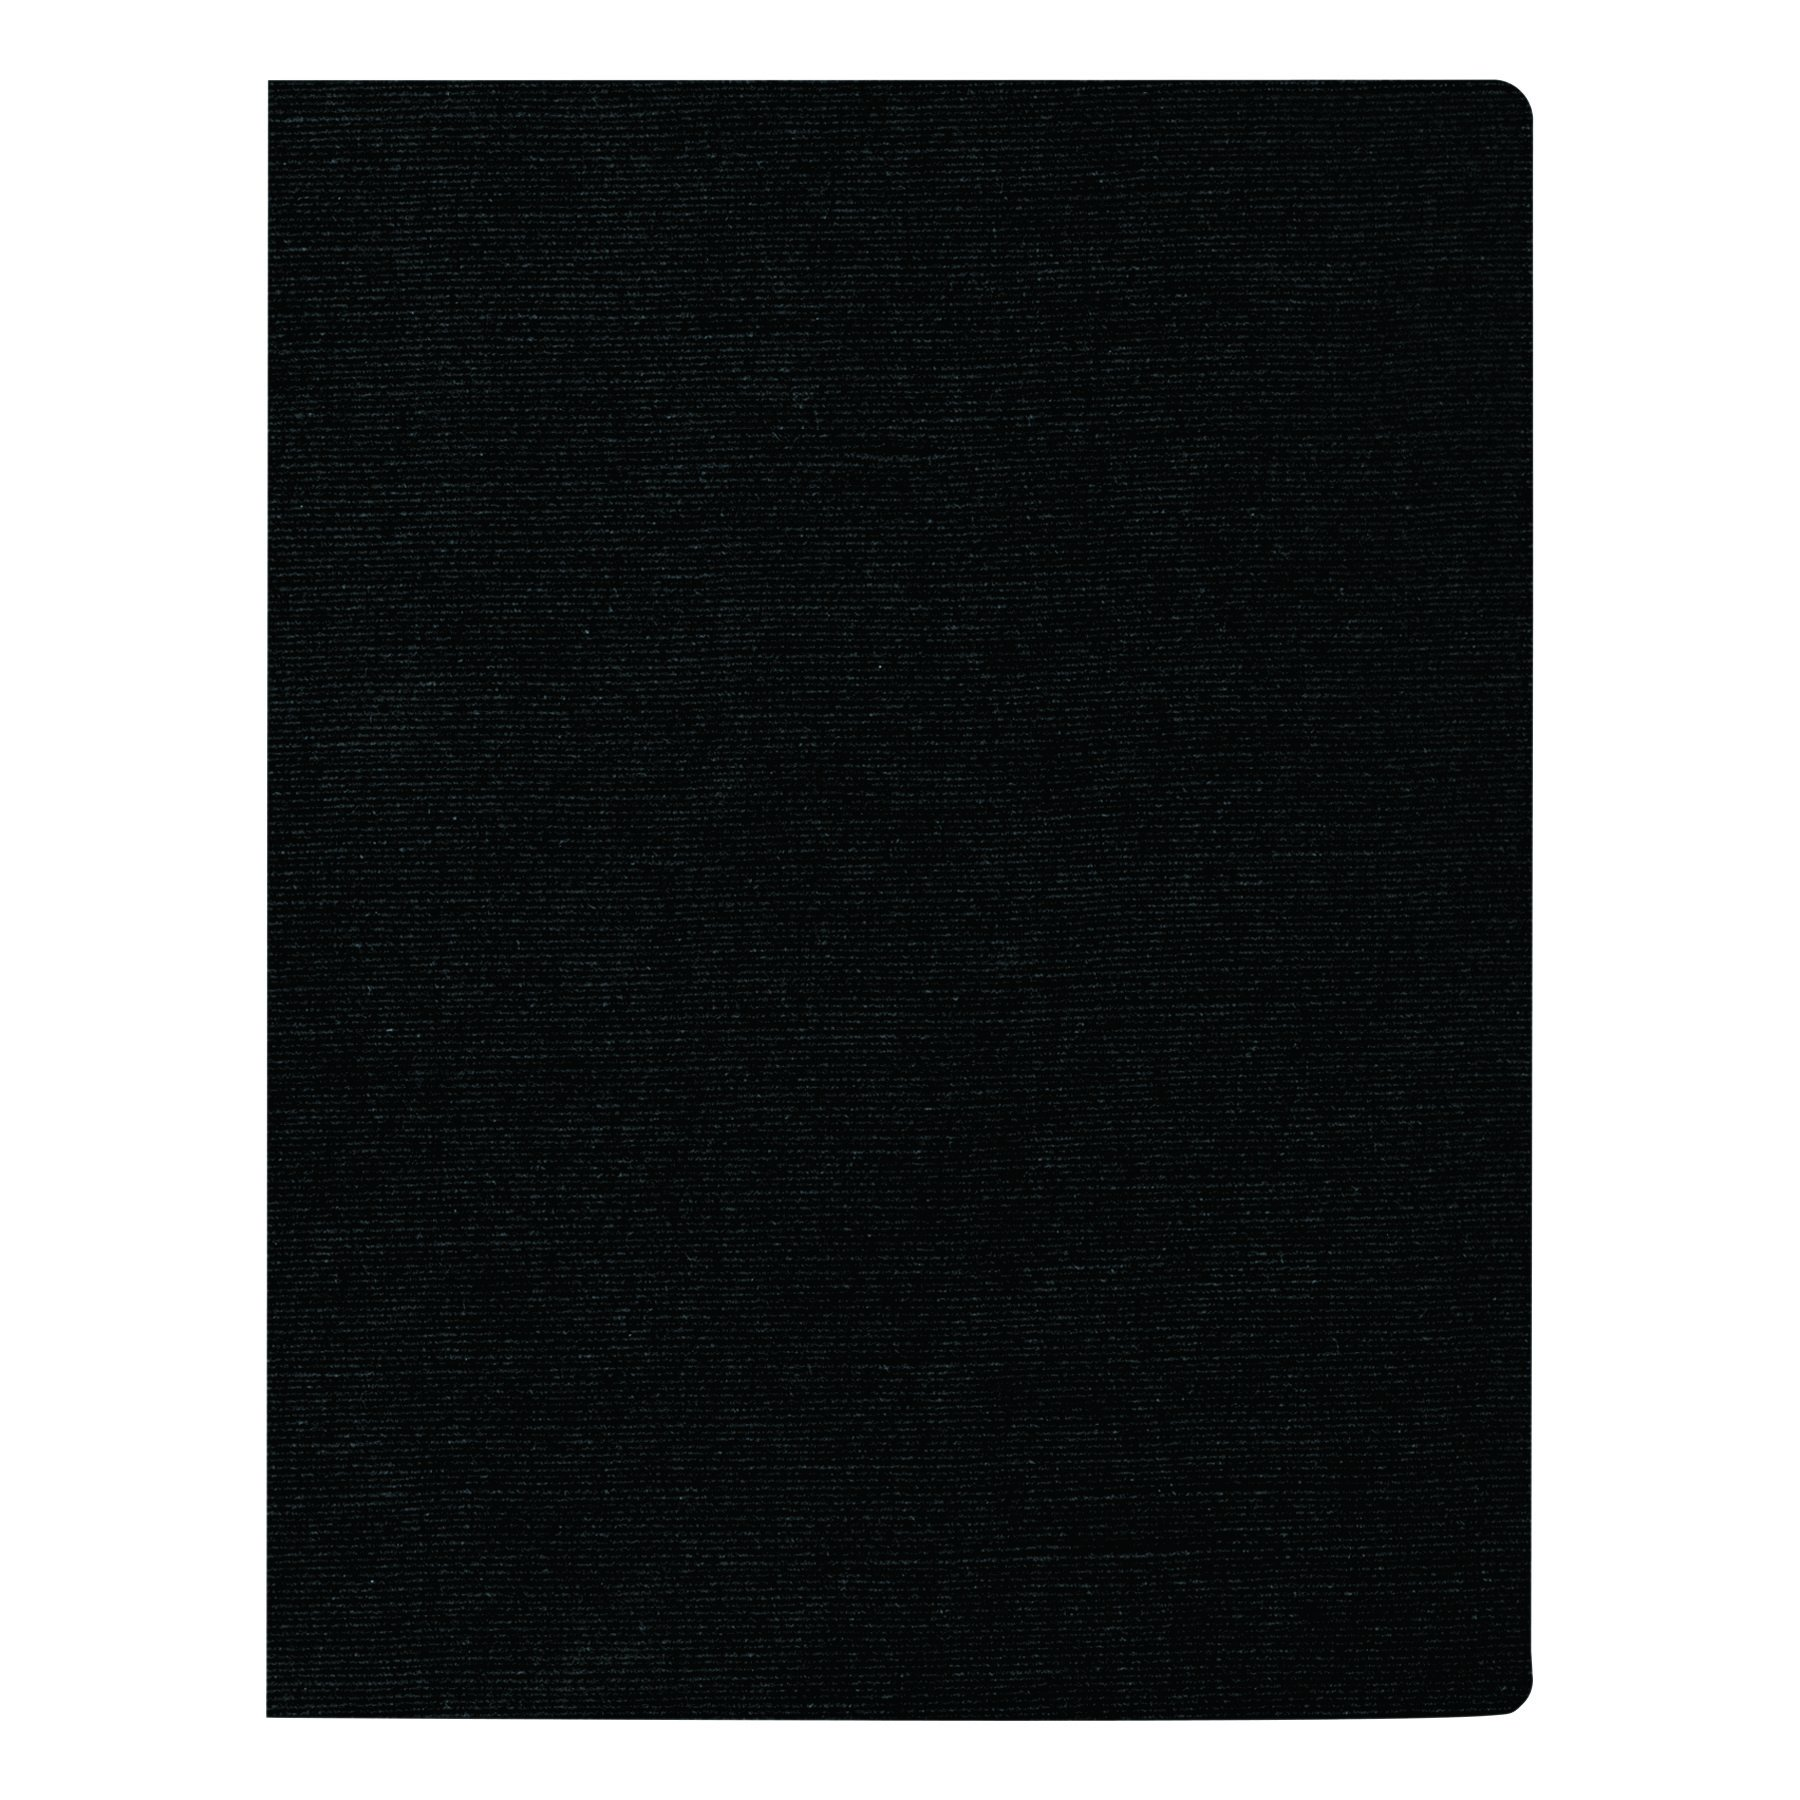 Fellowes 52115 Linen Texture Binding System Covers, 11-1/4 x 8-3/4, Black (Pack of 200) by Fellowes (Image #3)